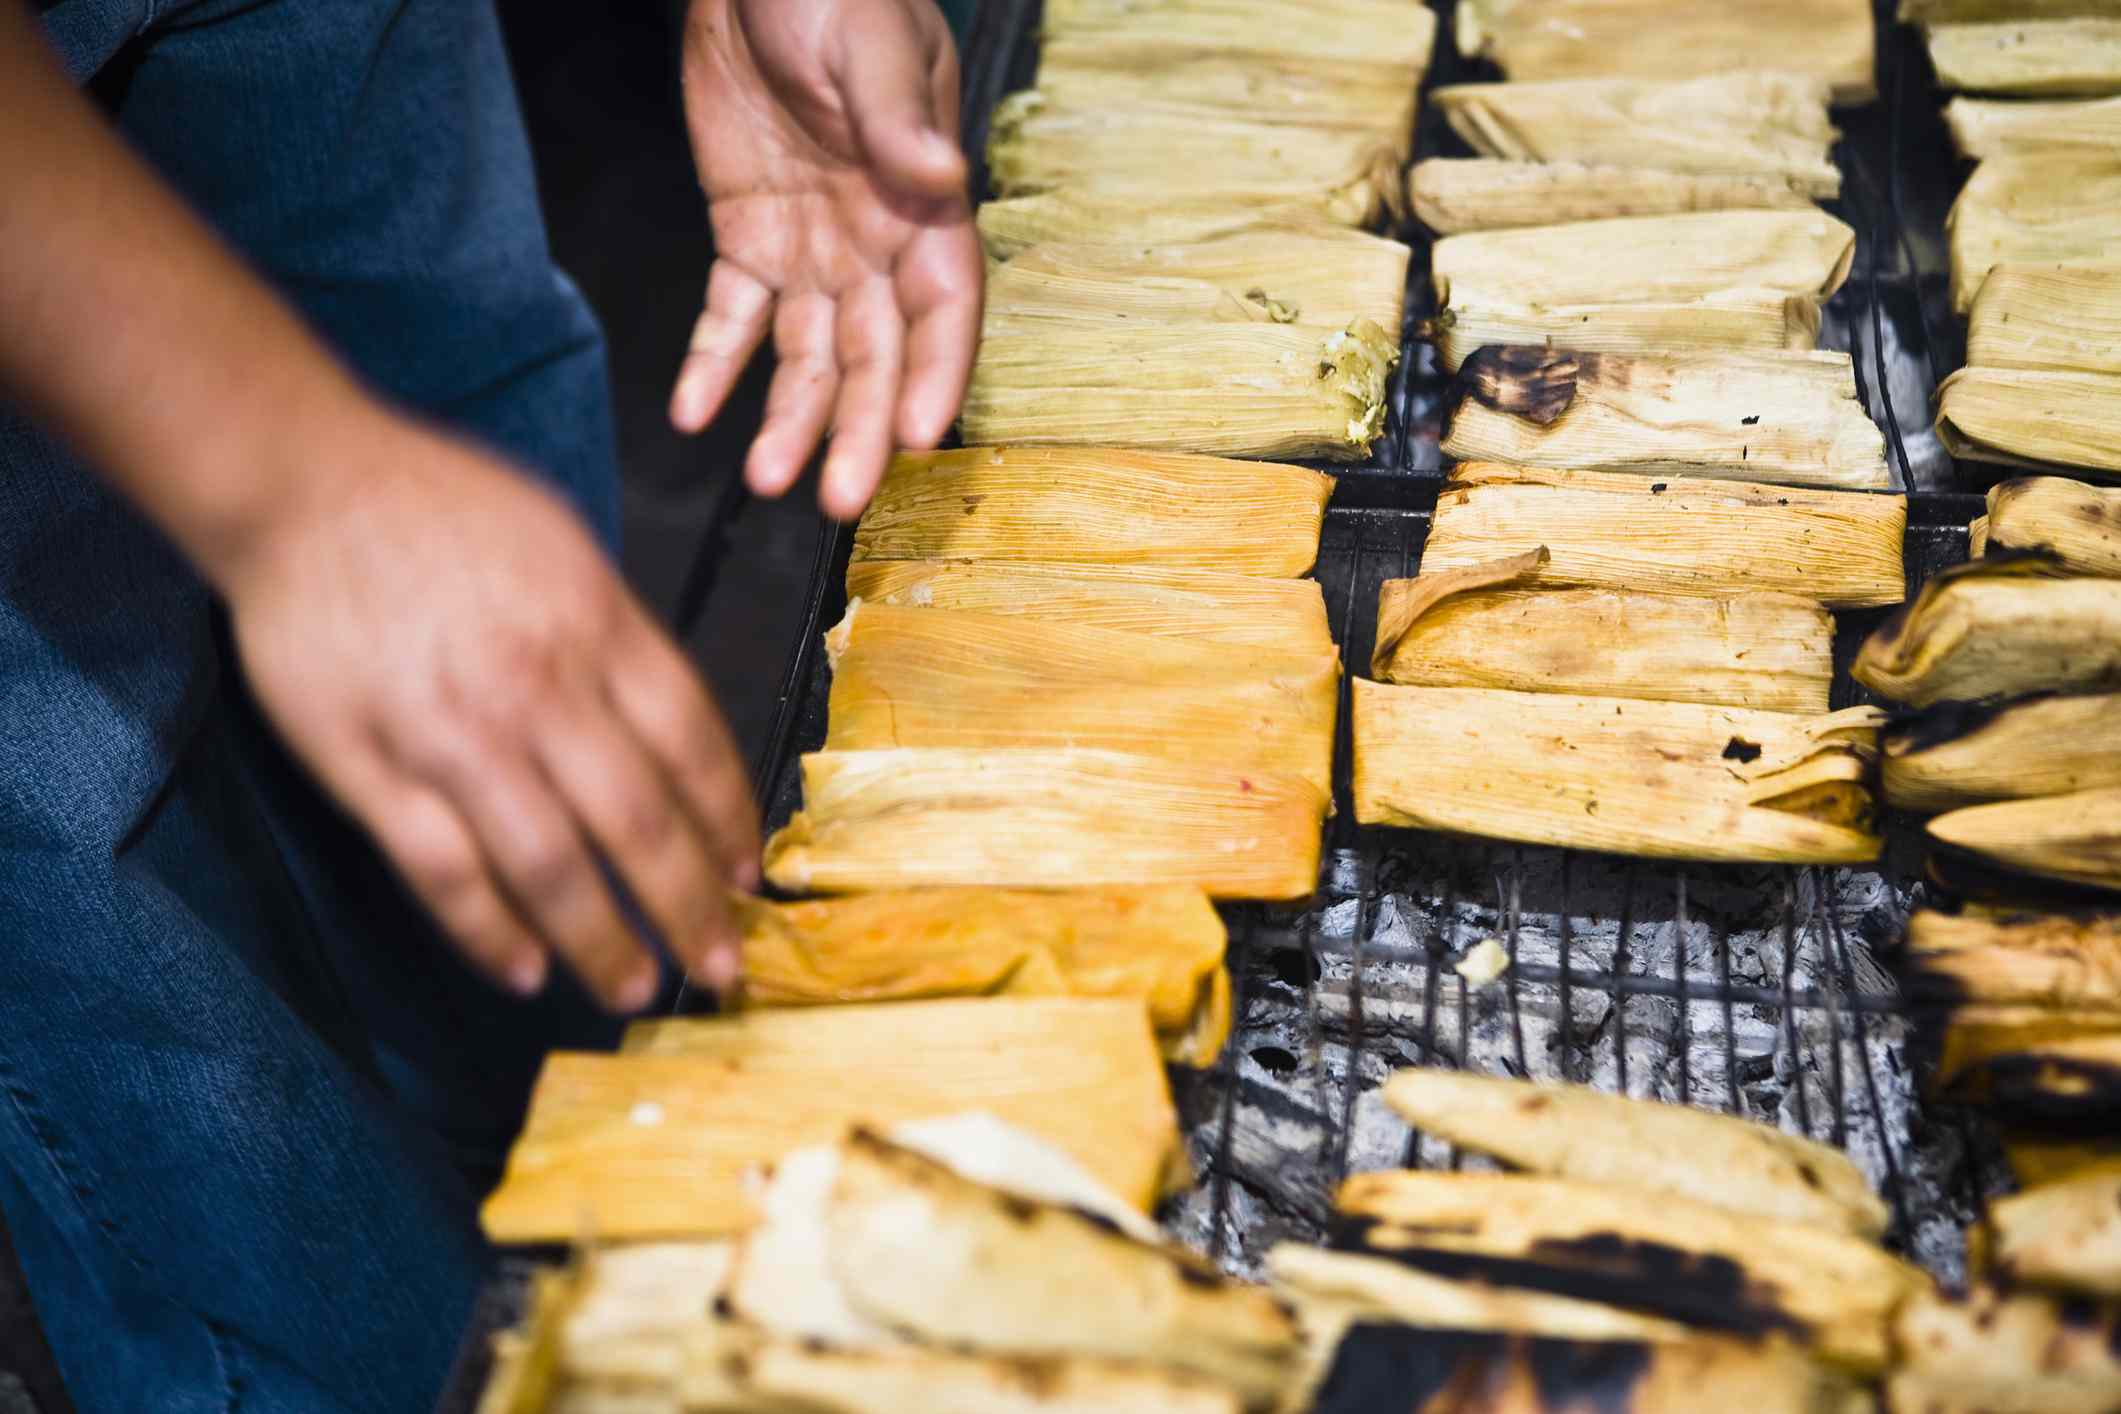 Mid section view of a man roasting tamales on barbecue grill, Zacatecas State, Mexico